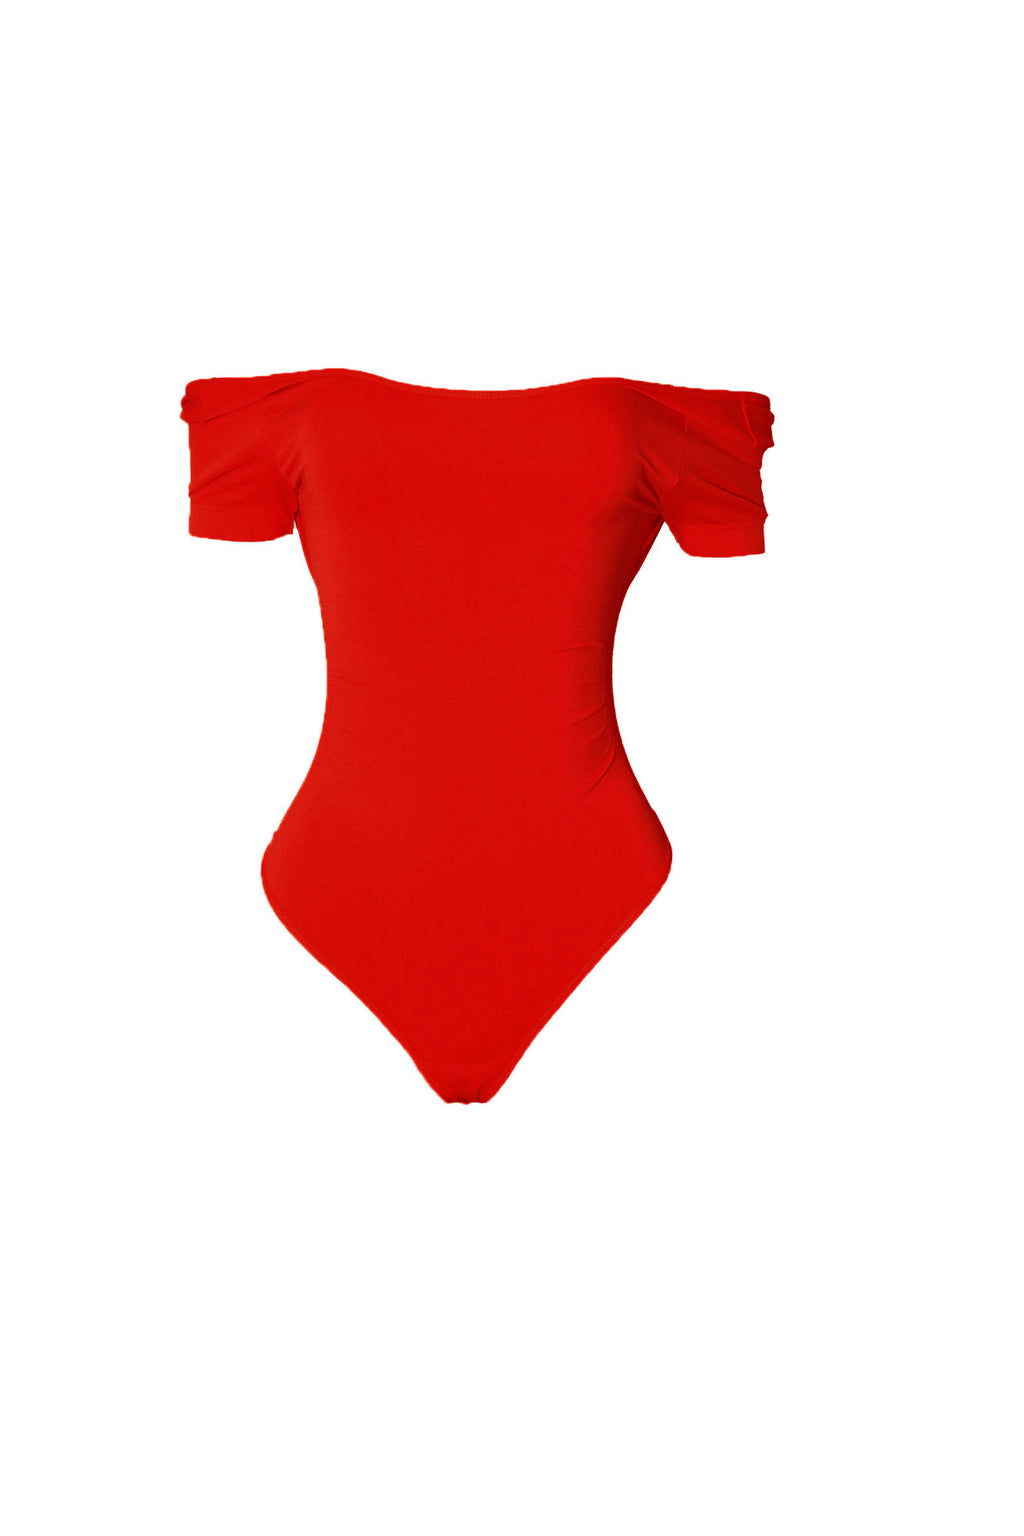 Red Short Sleeve Body By Babes Thong Bodysuit (10836125588)